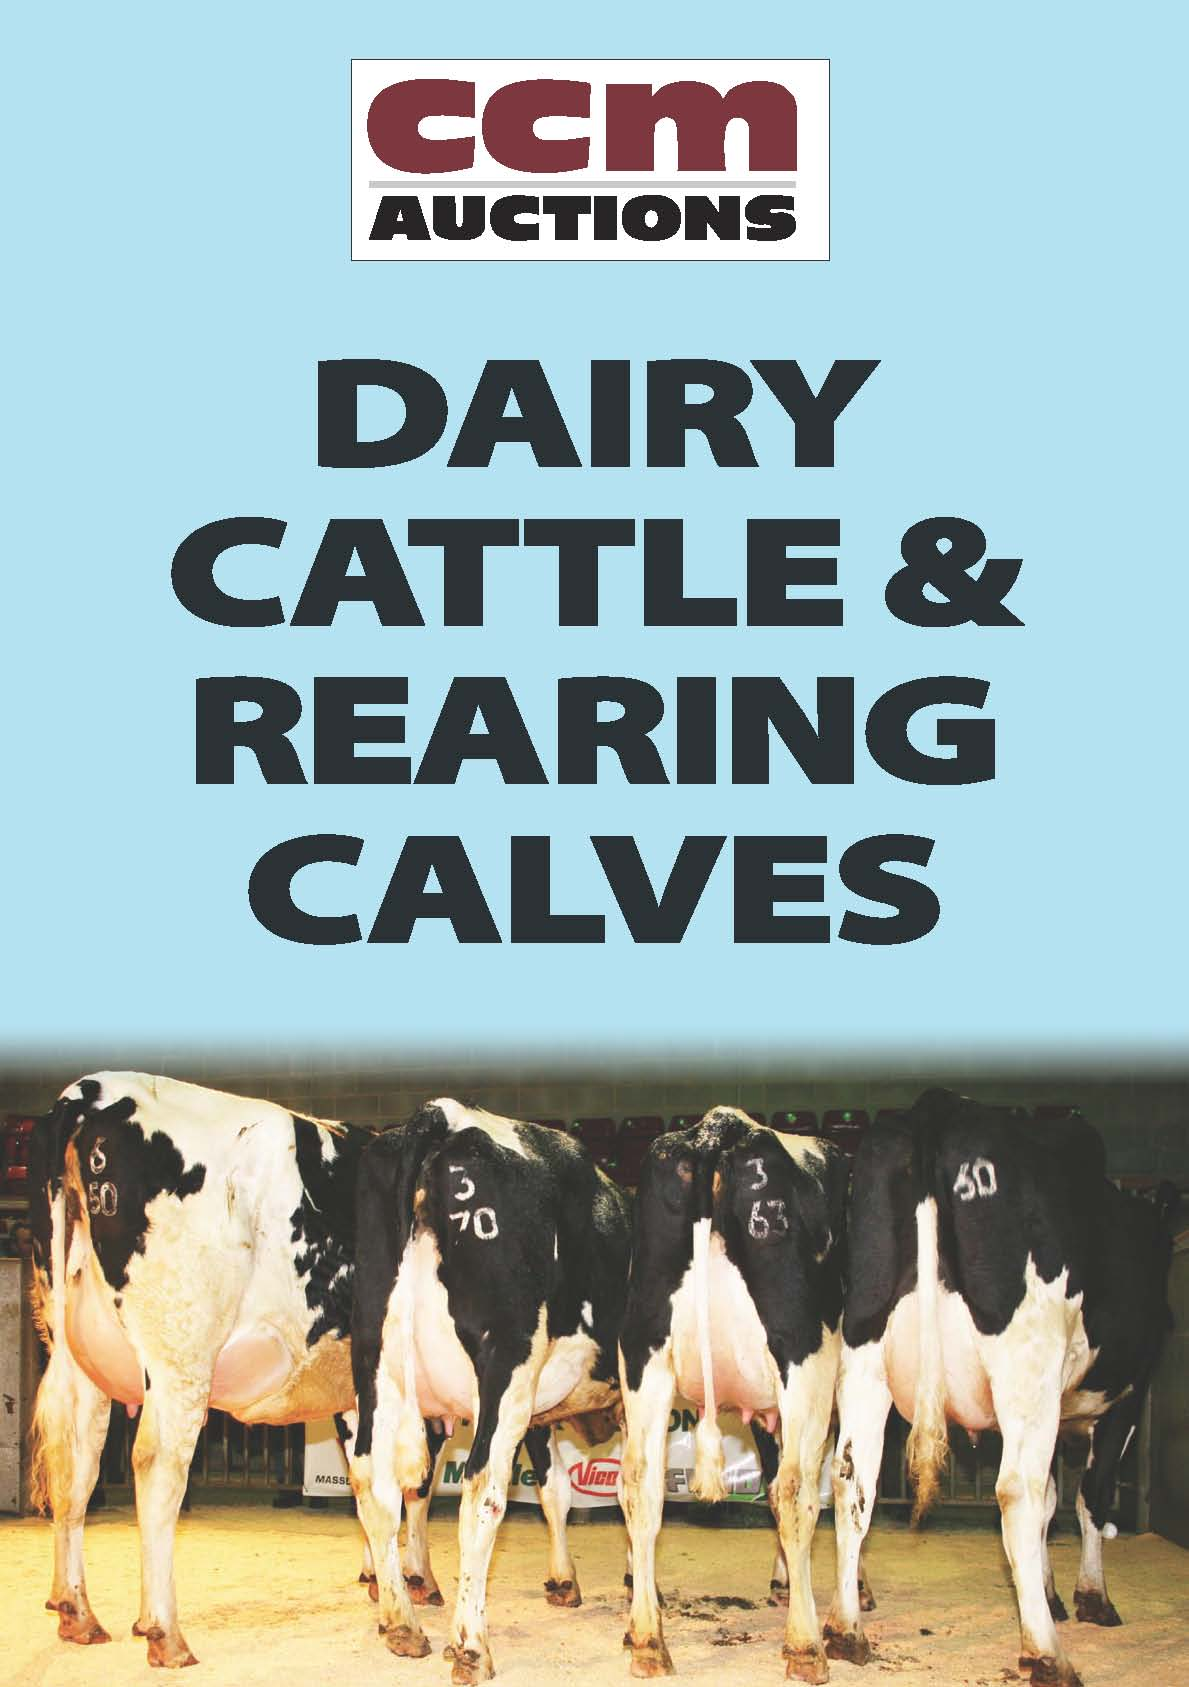 CALVES PRESS - MONDAY 22ND JUNE 2015